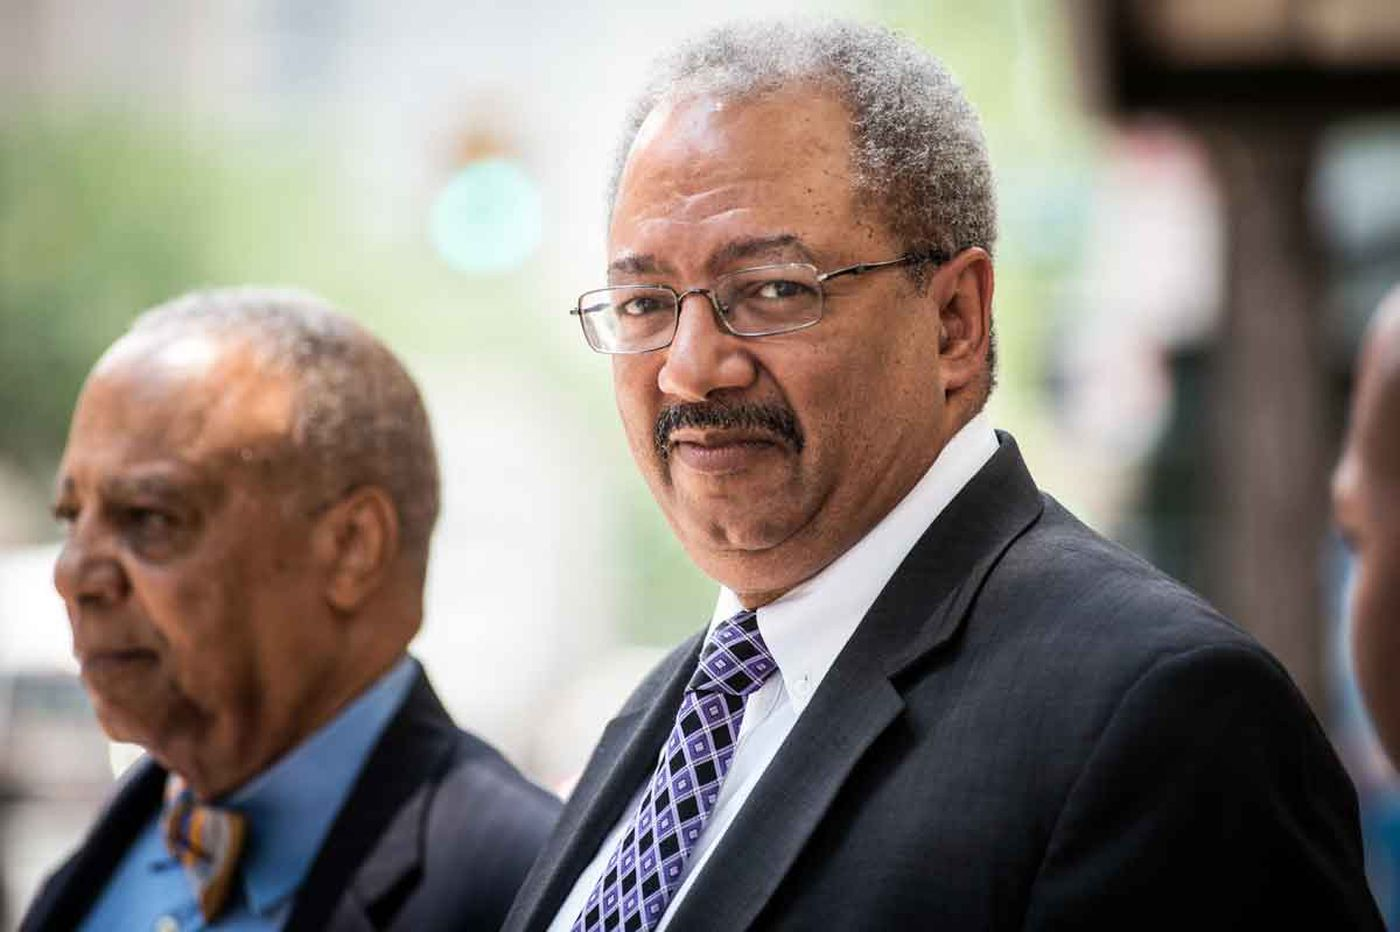 In face of uproar, Fattah resigns effective immediately